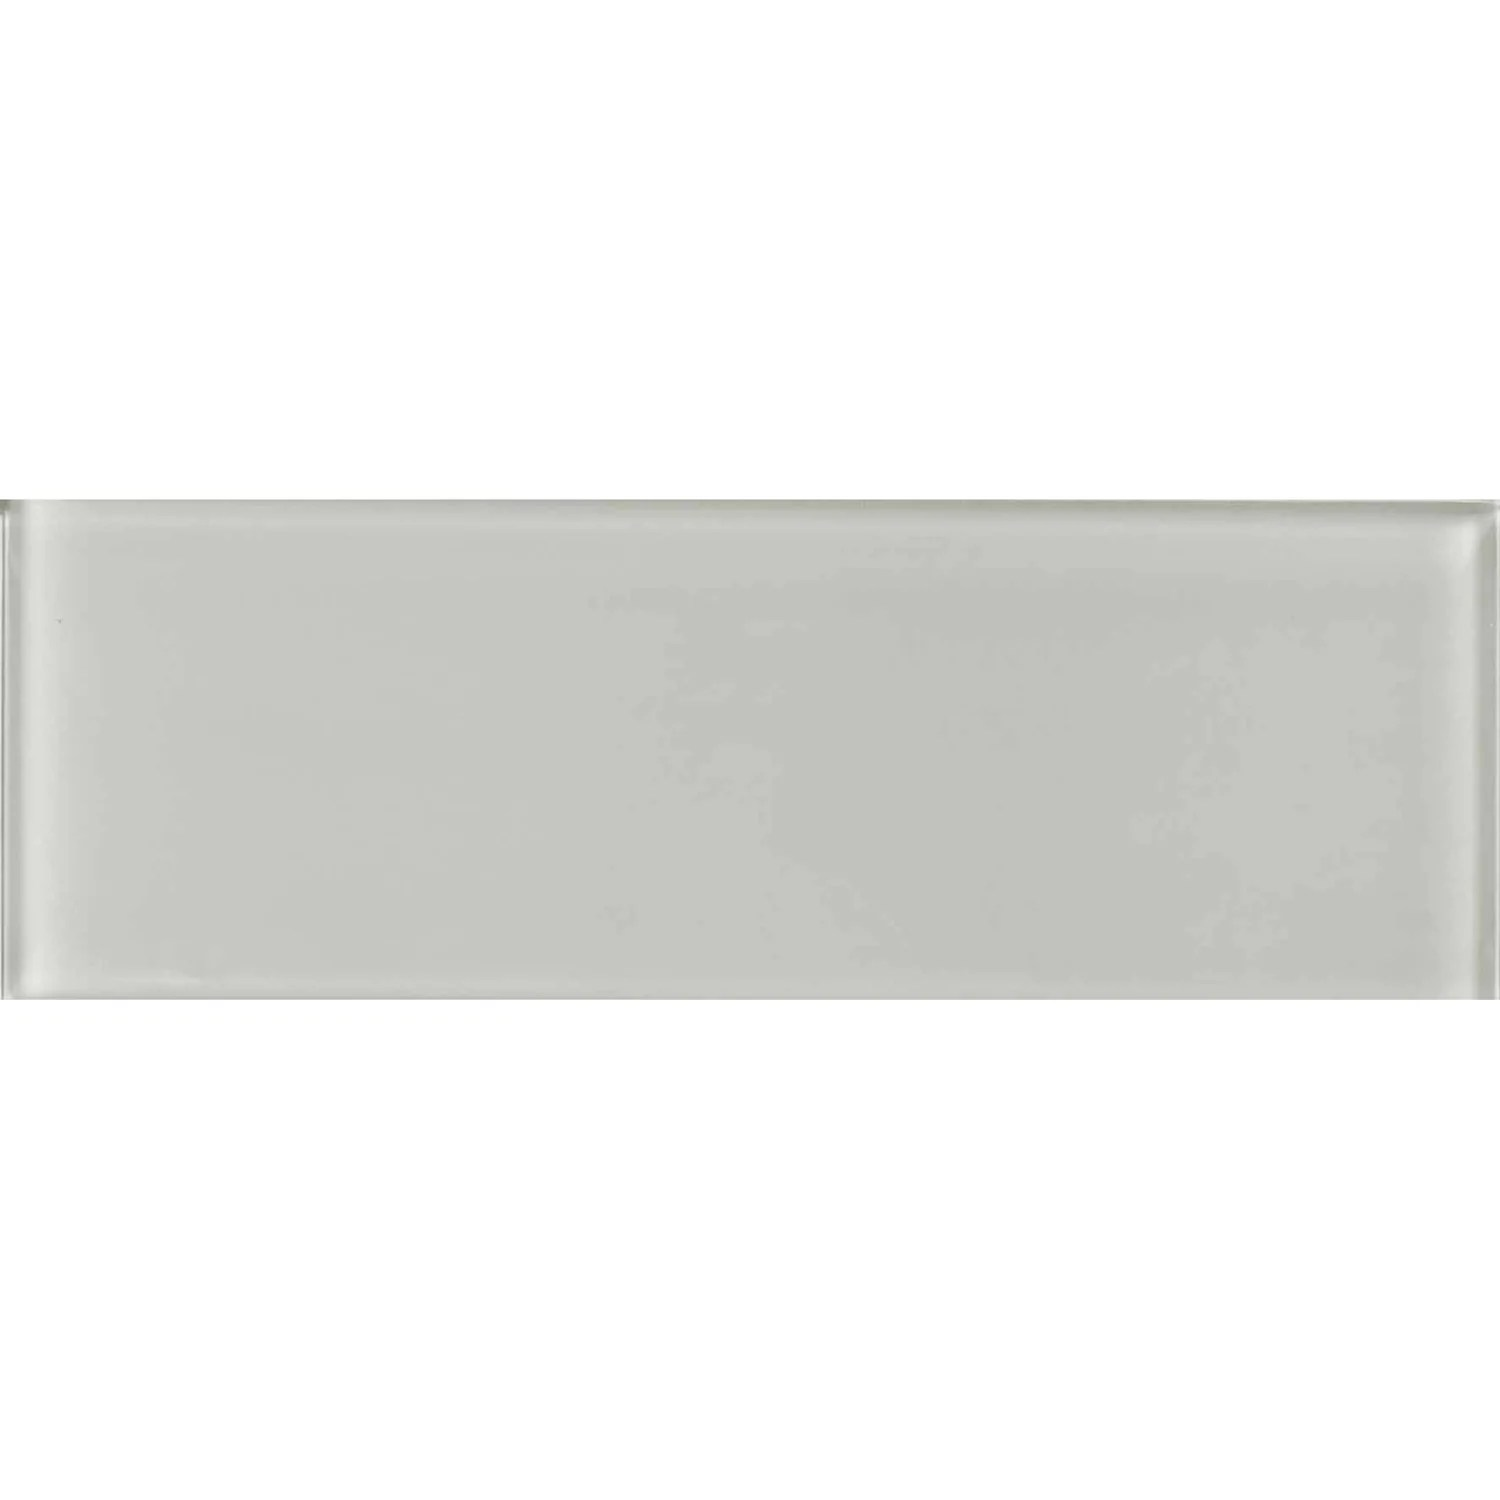 anatolia element glass wall tiles 8 in x 24 in mist